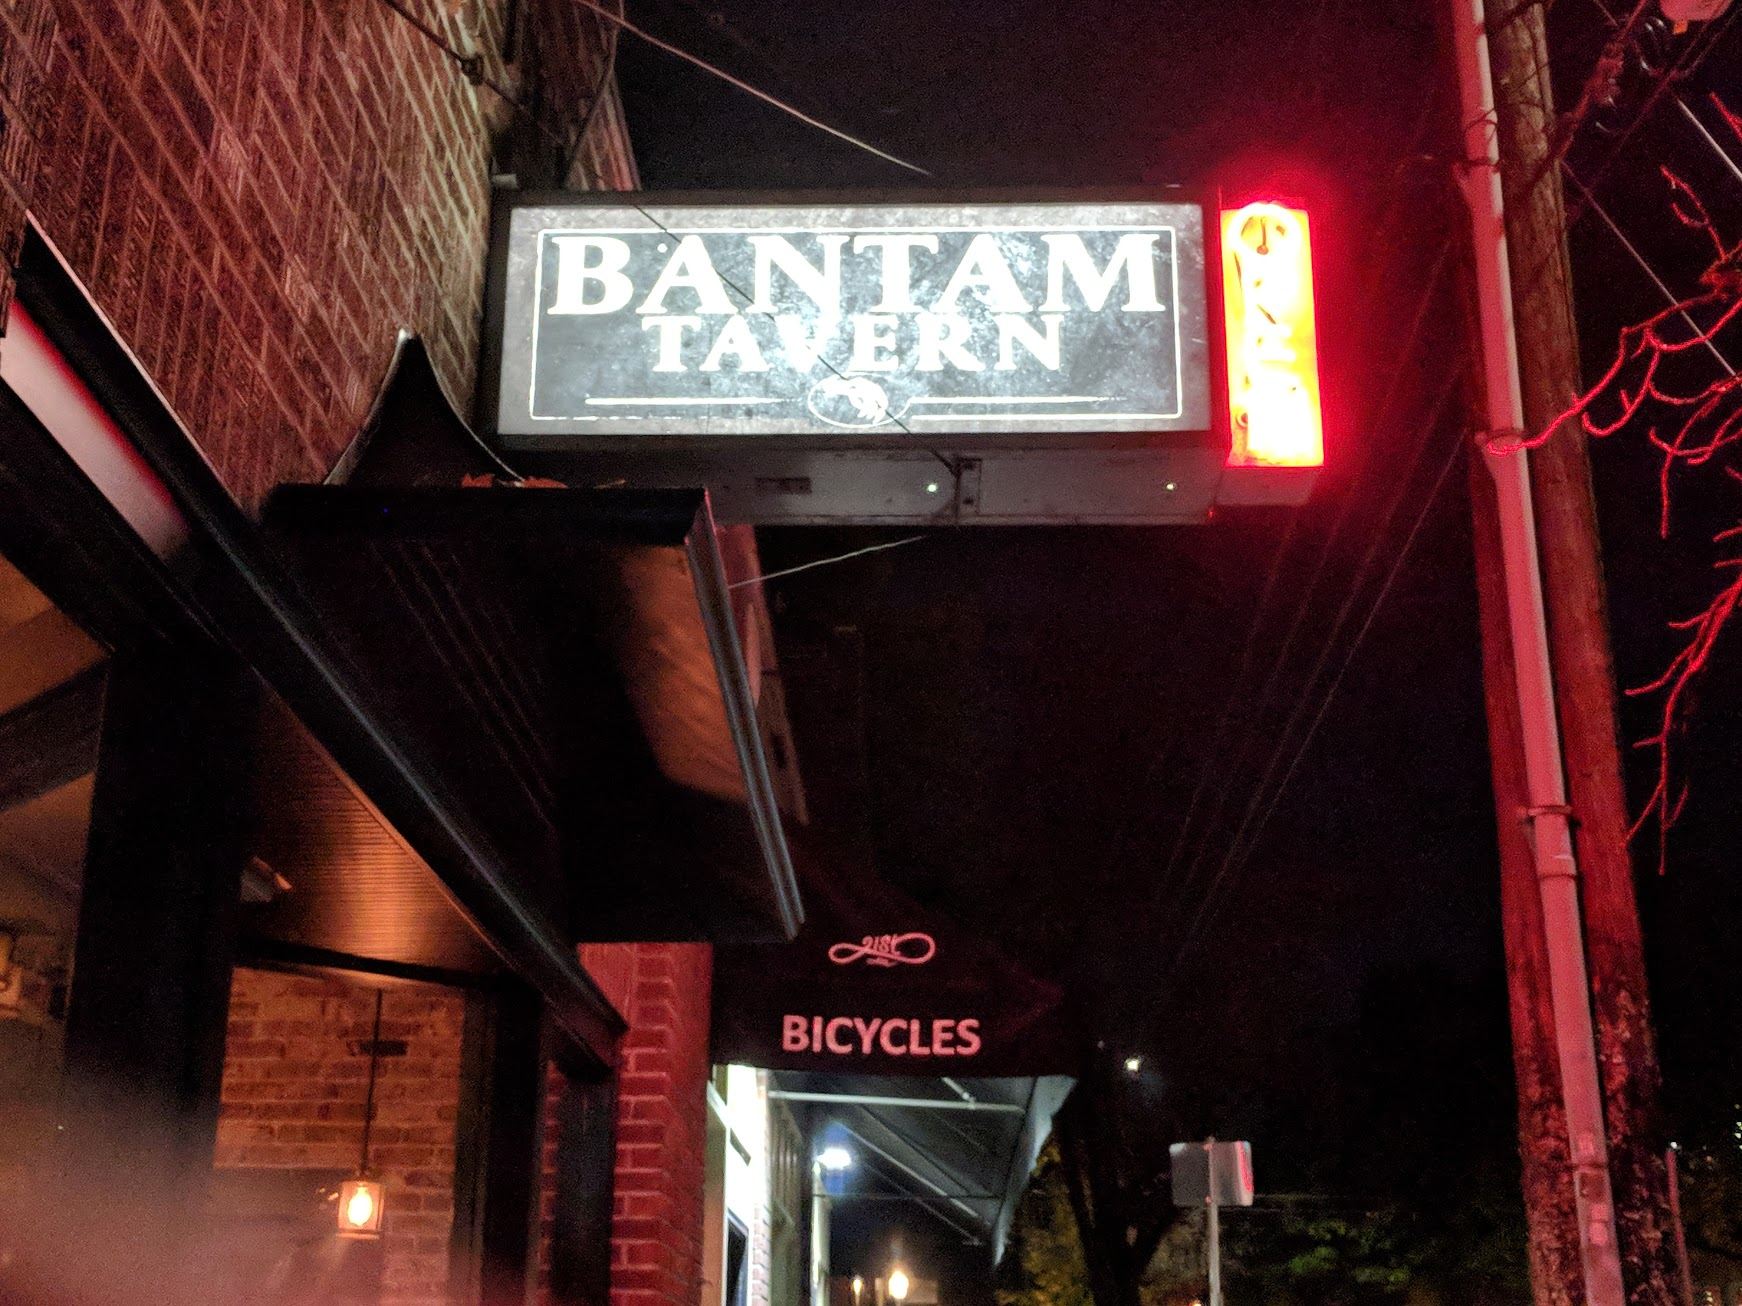 Bantam Tavern sign on NW 21st Avenue. (photo by Nick Rivers)